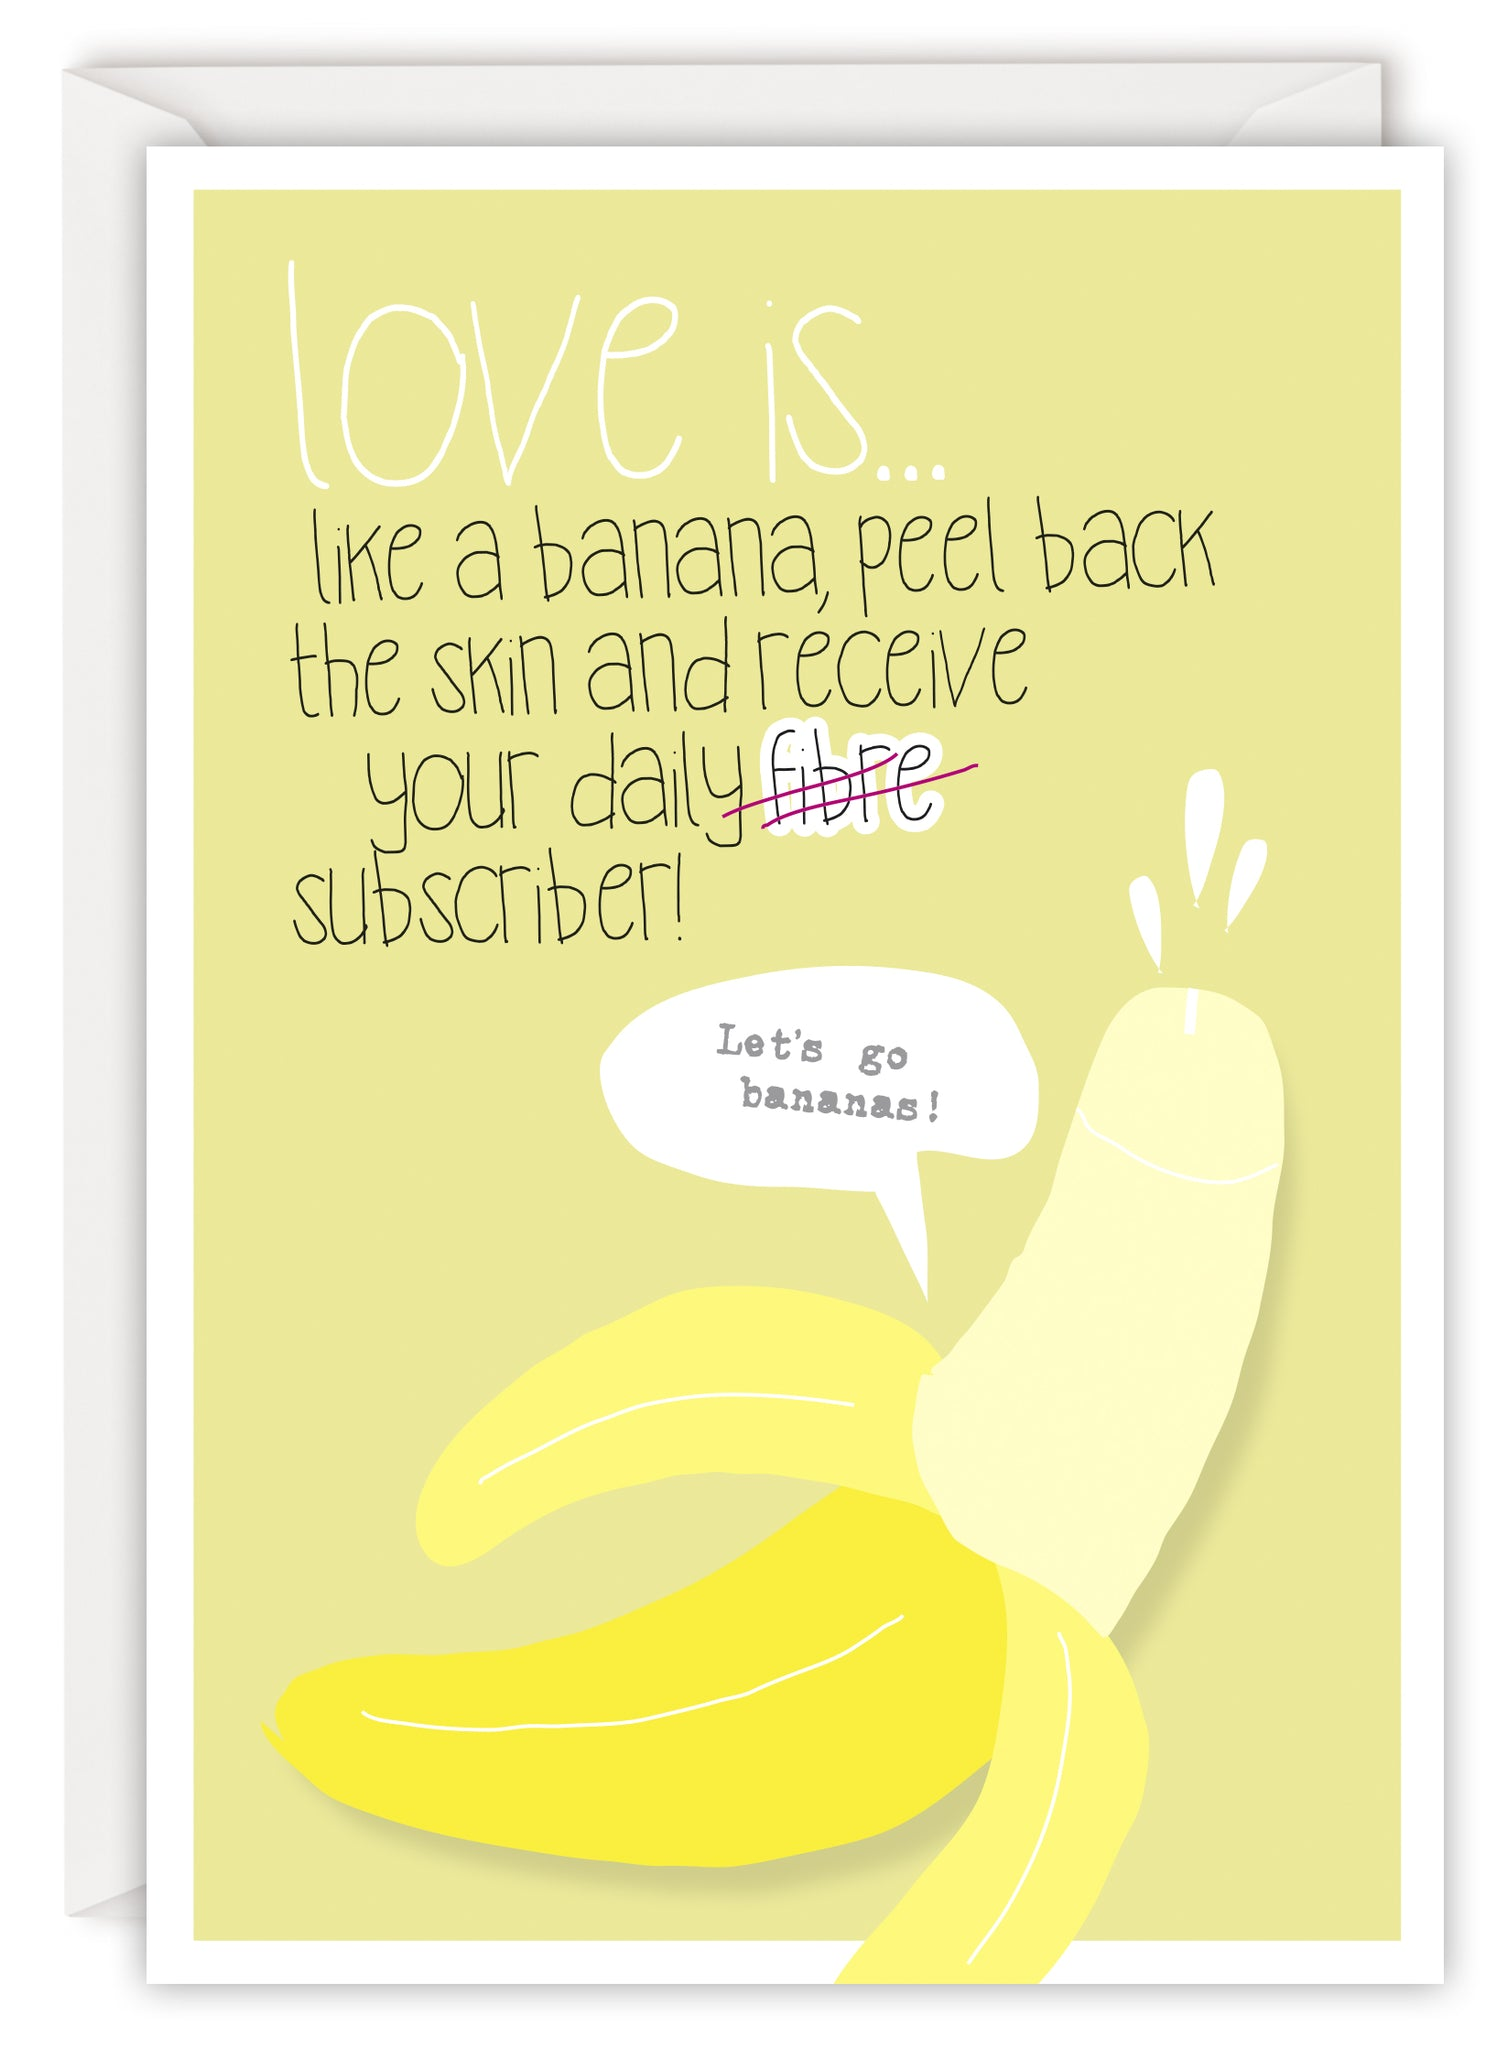 Love is… like a banana, peel back the skin and receive your daily subscriber!